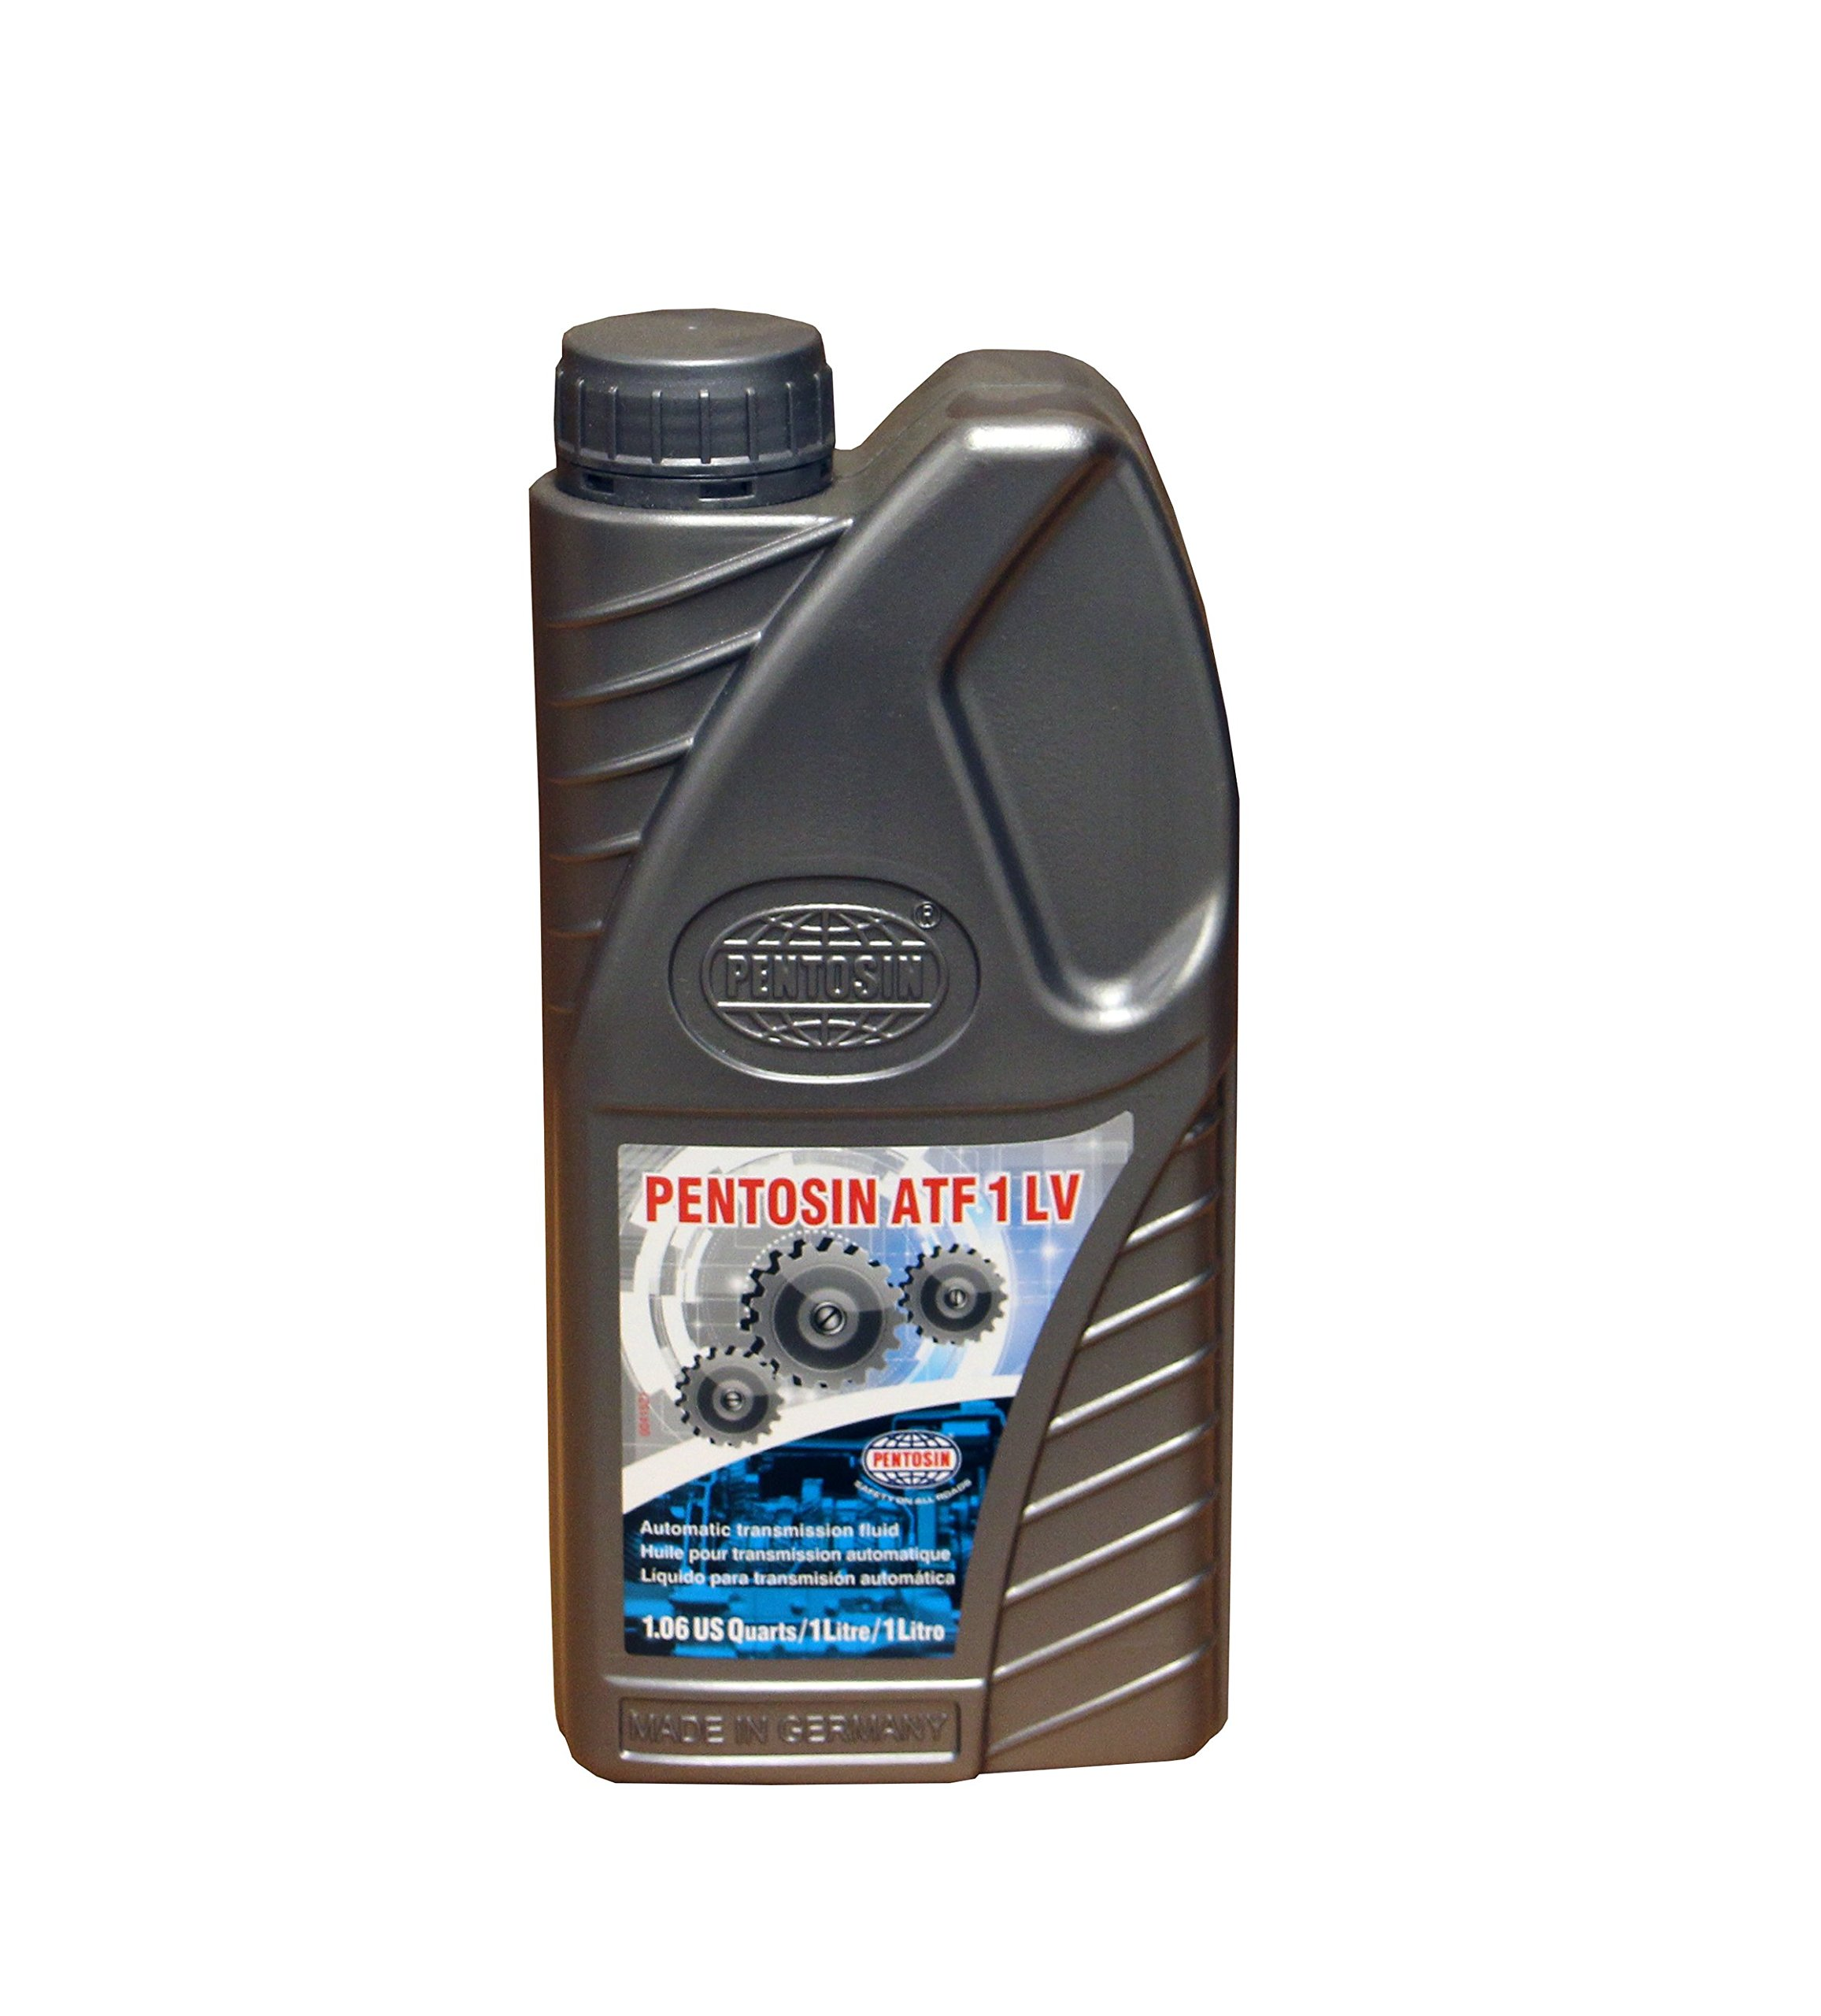 Pentosin 1088107-C ATF 1 Transmission Fluid 1 L, 12 Pack by Pentosin